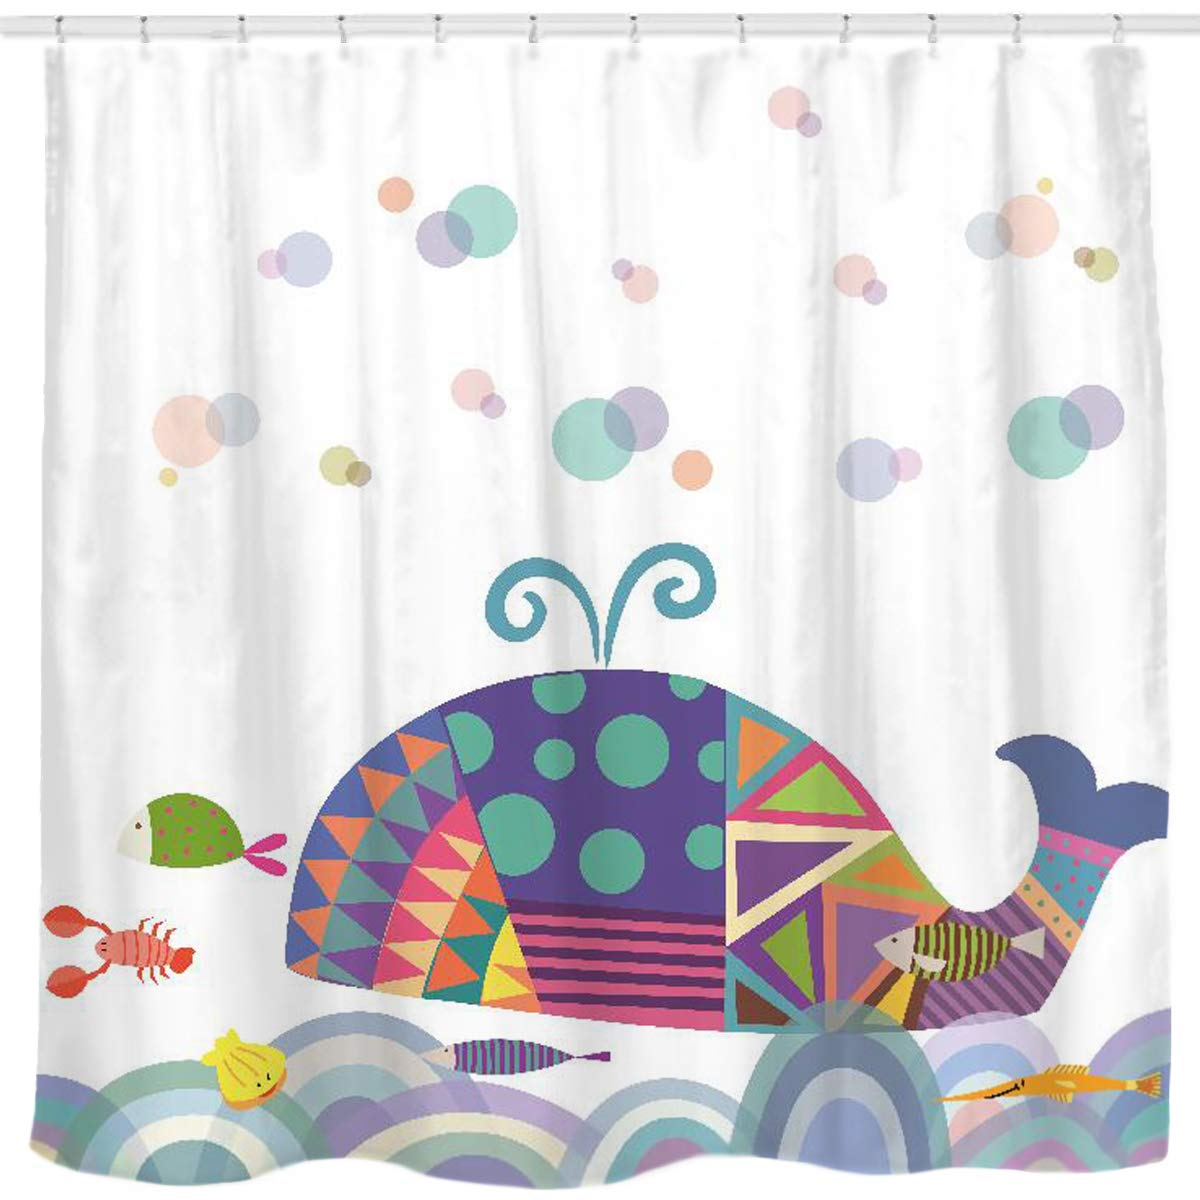 Sunlit Colorful Geometric Whale Waves Bubble Shower Curtain with Cute Marine Life Tropical Fish Shrimp, Fairy Tale Children Illustration Cartoon Abstract Bathroom Decor for Kids and Baby White